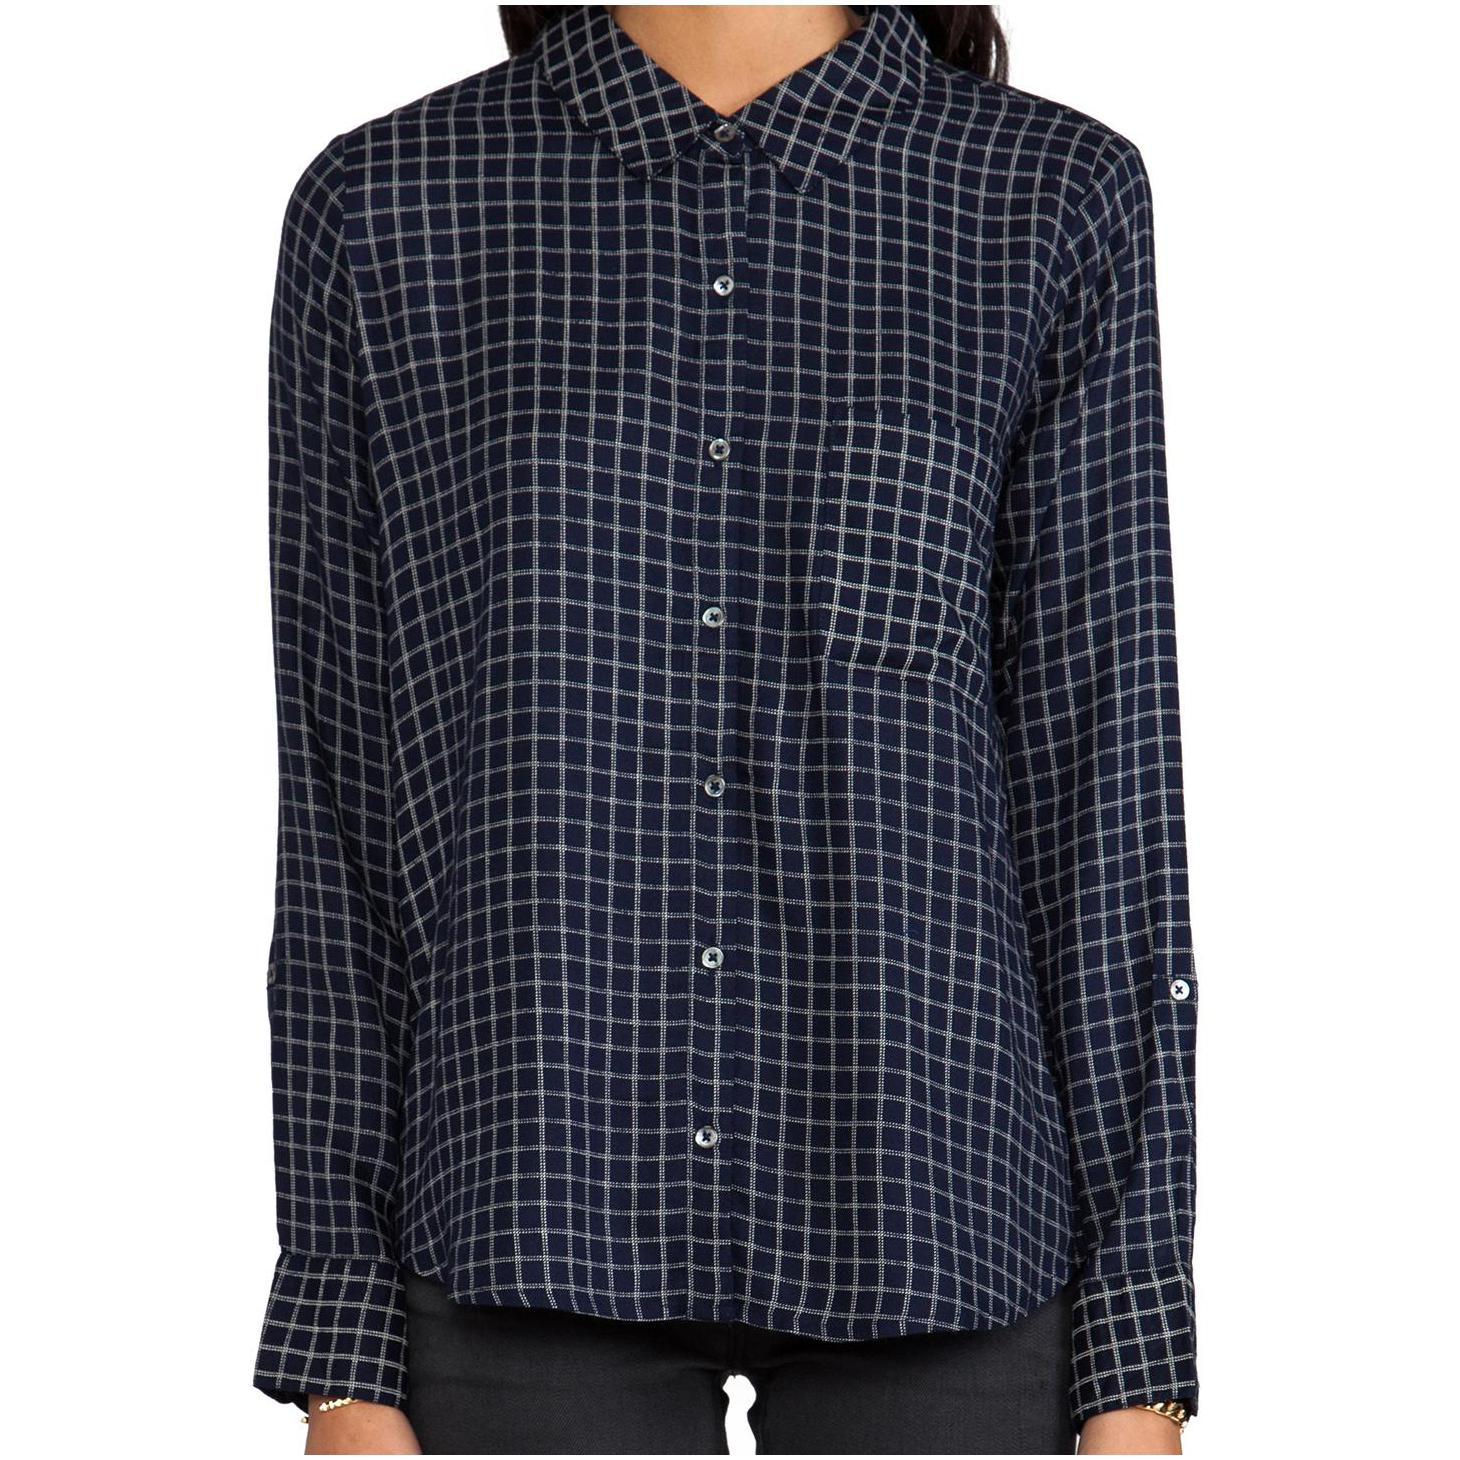 Soft Joie Anabella Plaid Button Down for Women – Oorrgal